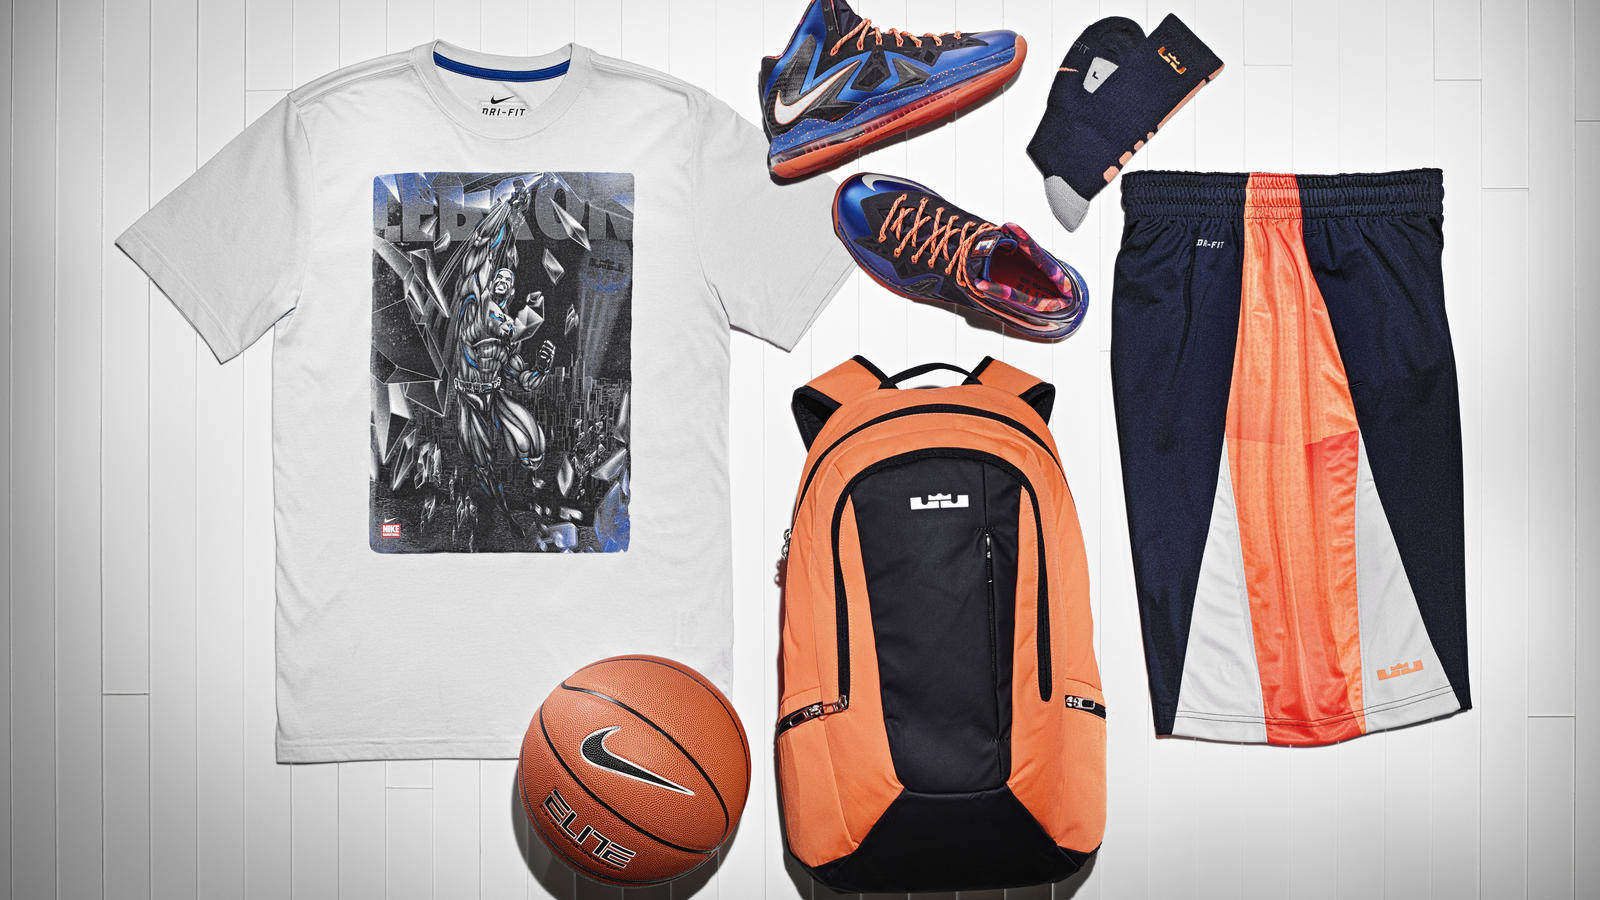 13-190_nike_lebron_gear_up_group-01